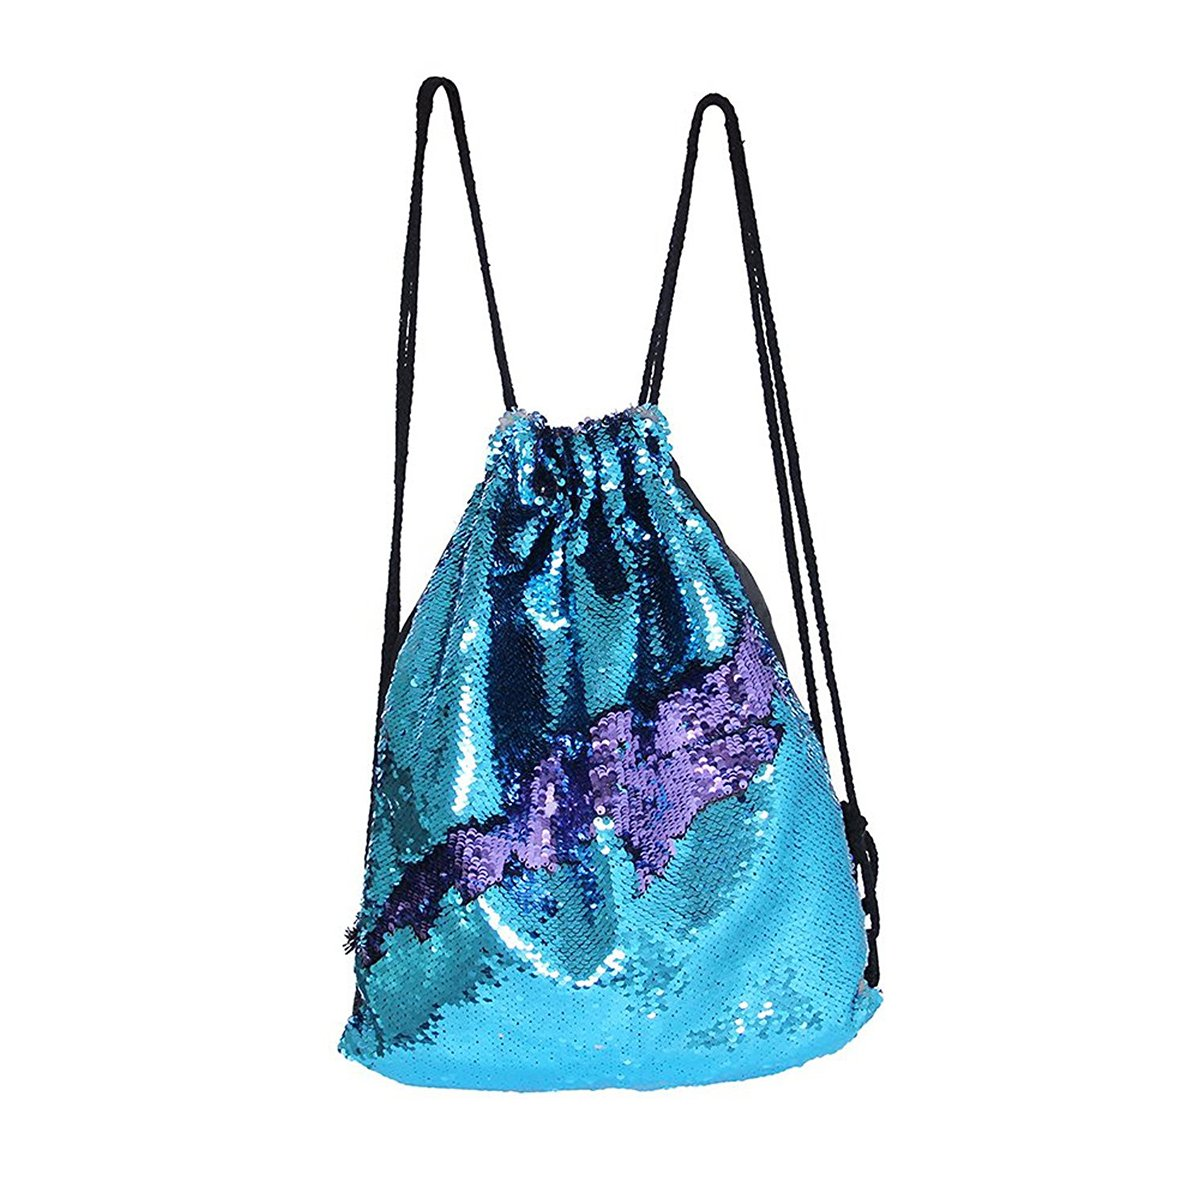 Xy Litol Sequin Drawstring Backpack, Fashion Glitter Sequins Mermaid Cut Magic Reversible Glitter String Gym Sport Bag Tiffany Blue Purple